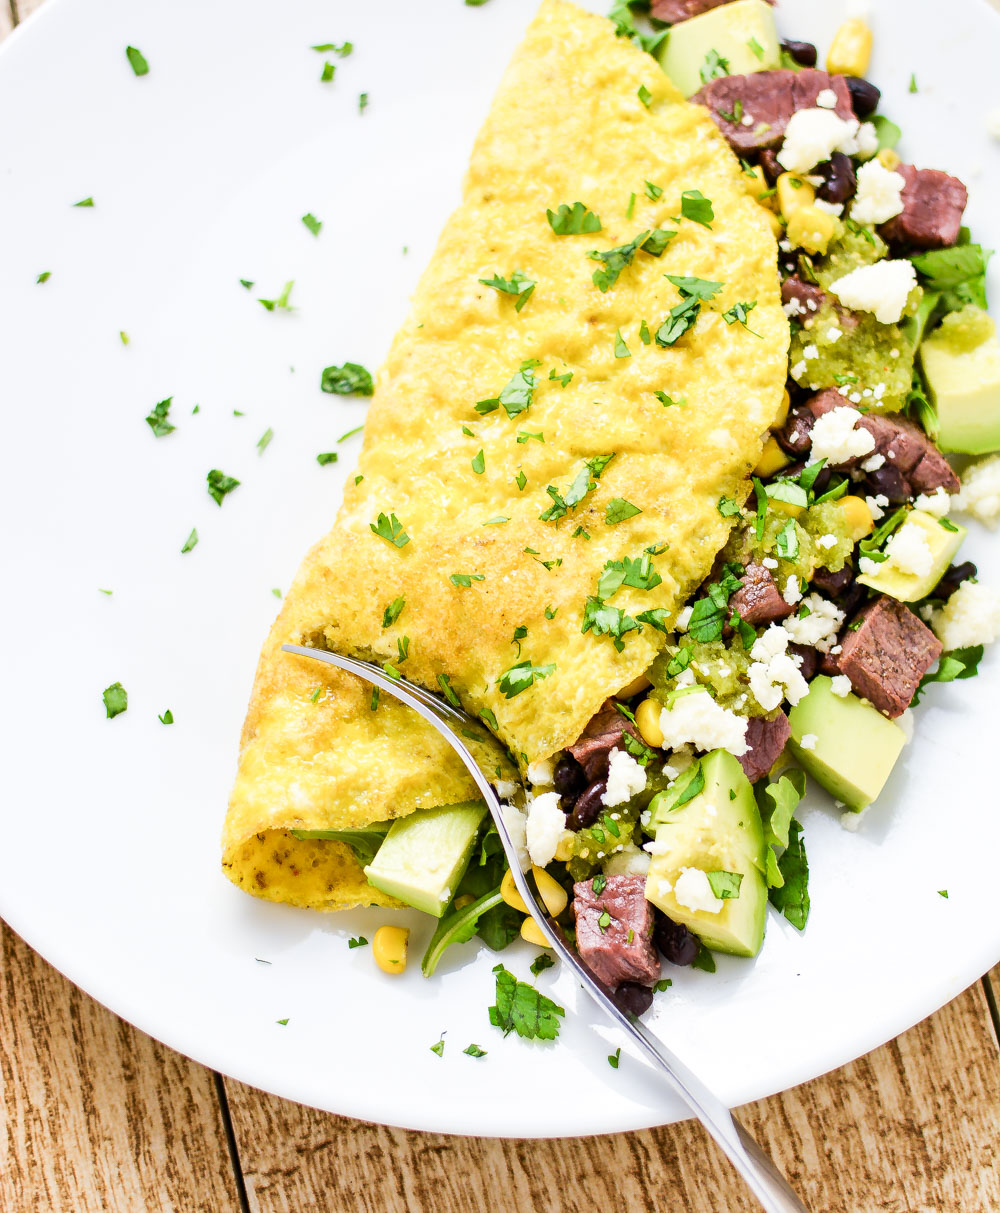 Southwestern Omelet with Quick Salsa Verde